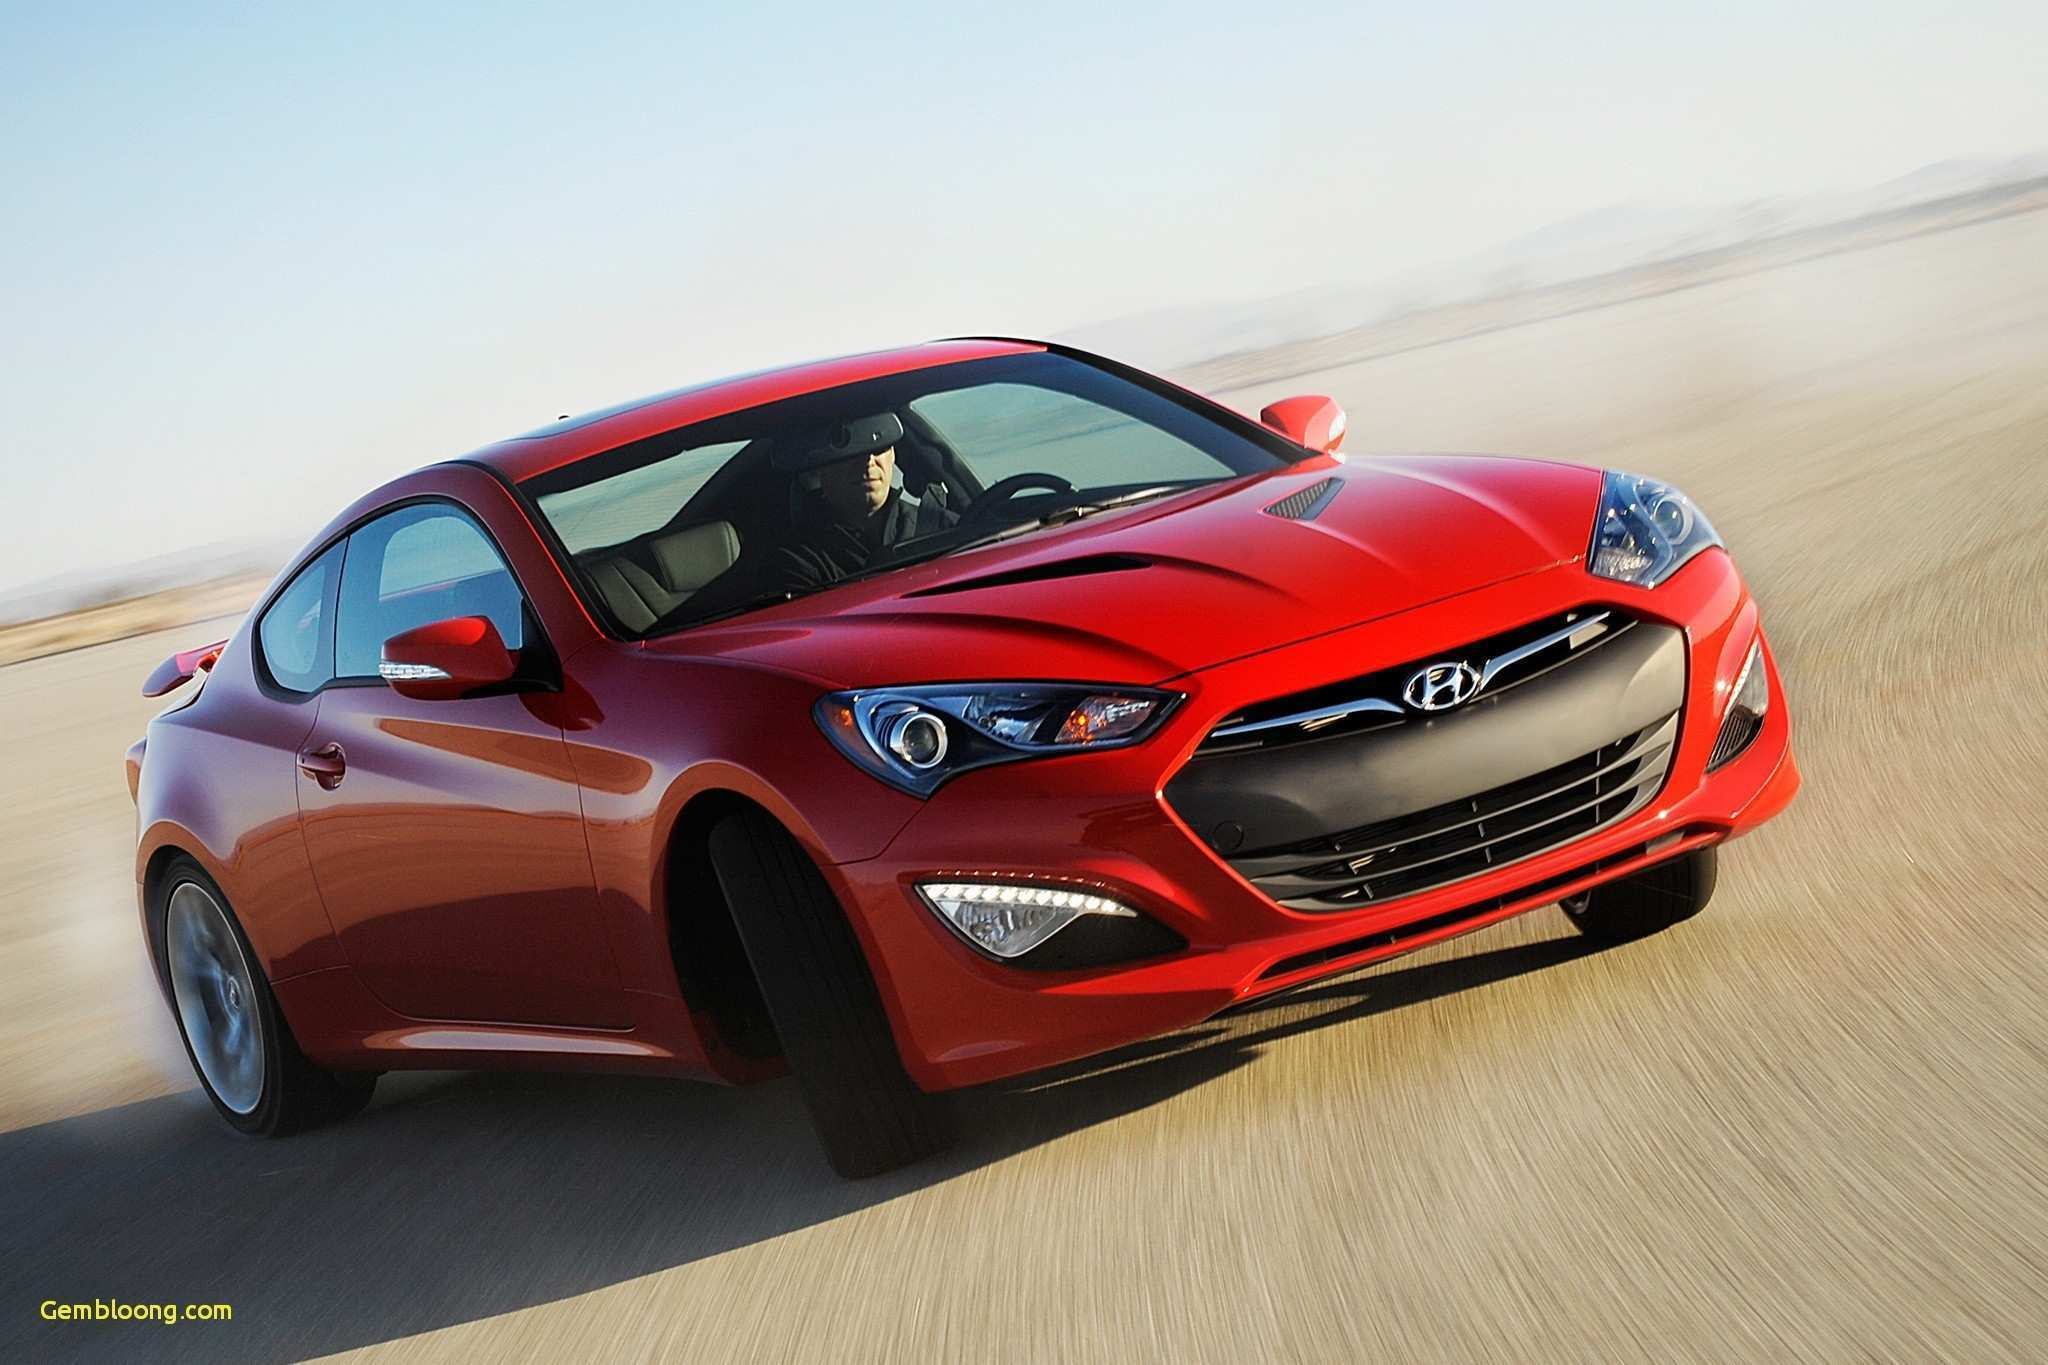 41 New 2020 Hyundai Genesis Coupe V8 Picture